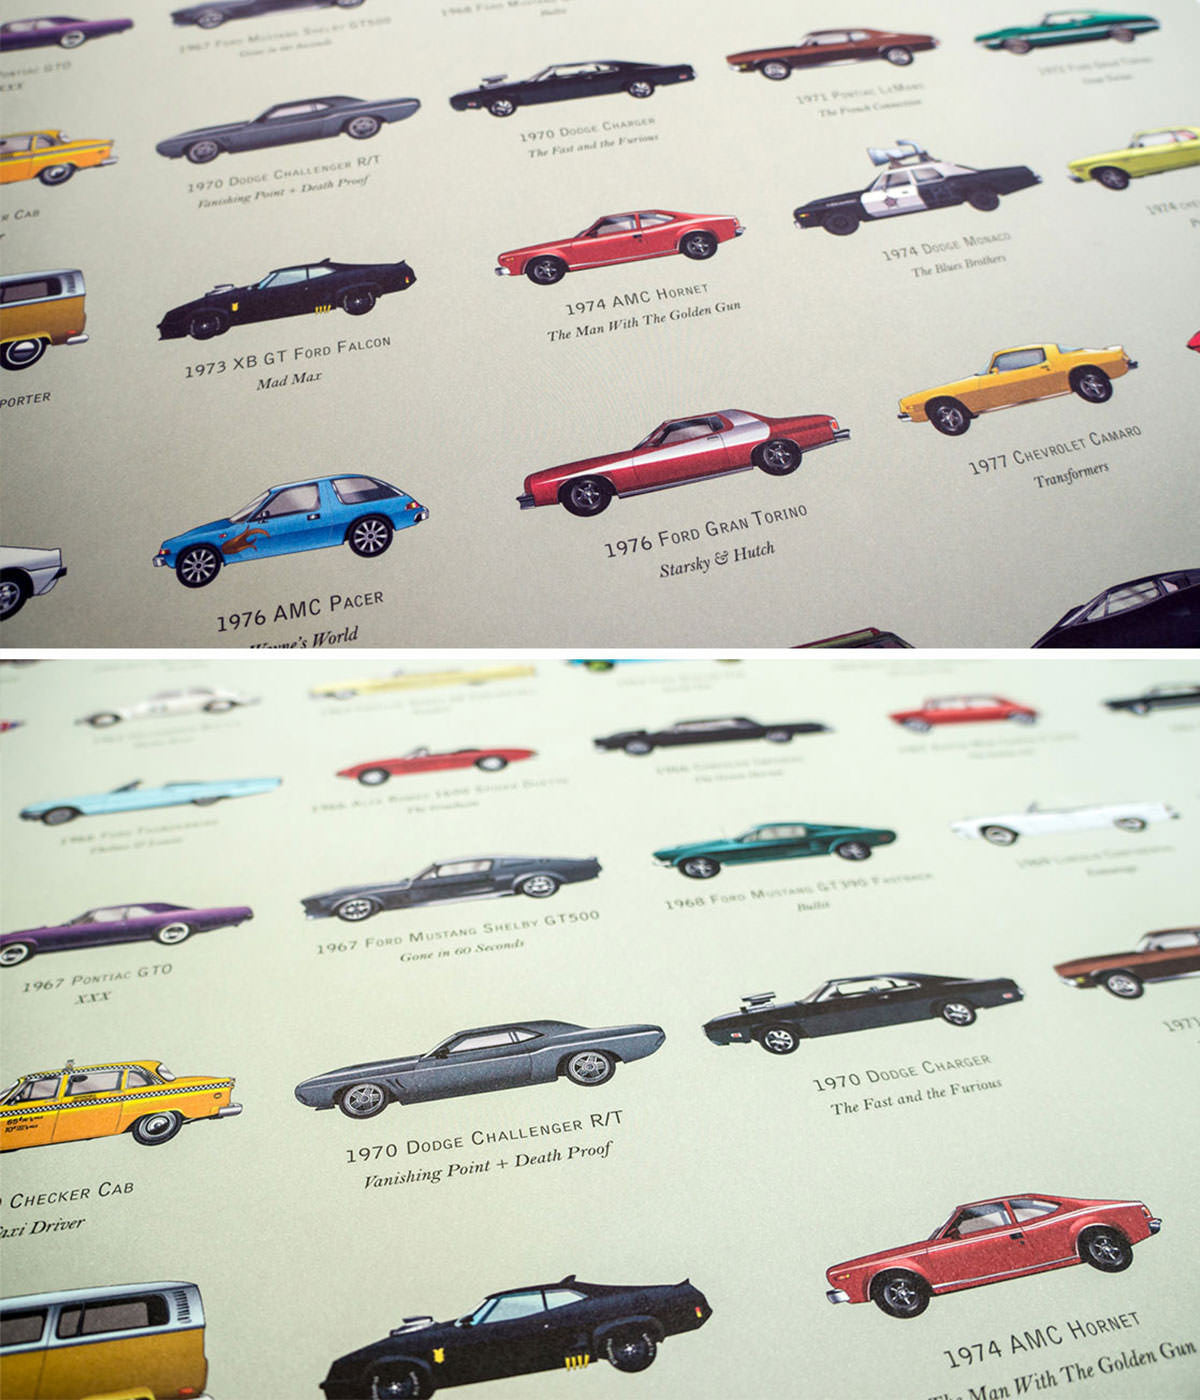 The Filmography of Cars